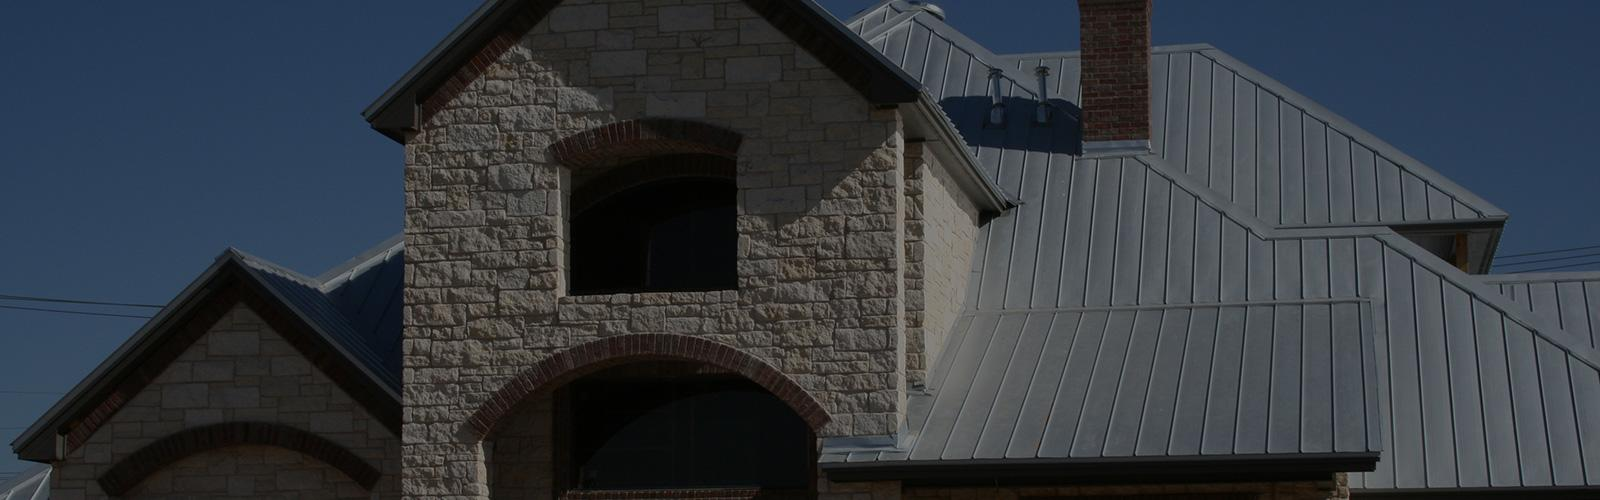 Georgia Mountain Roofing Images